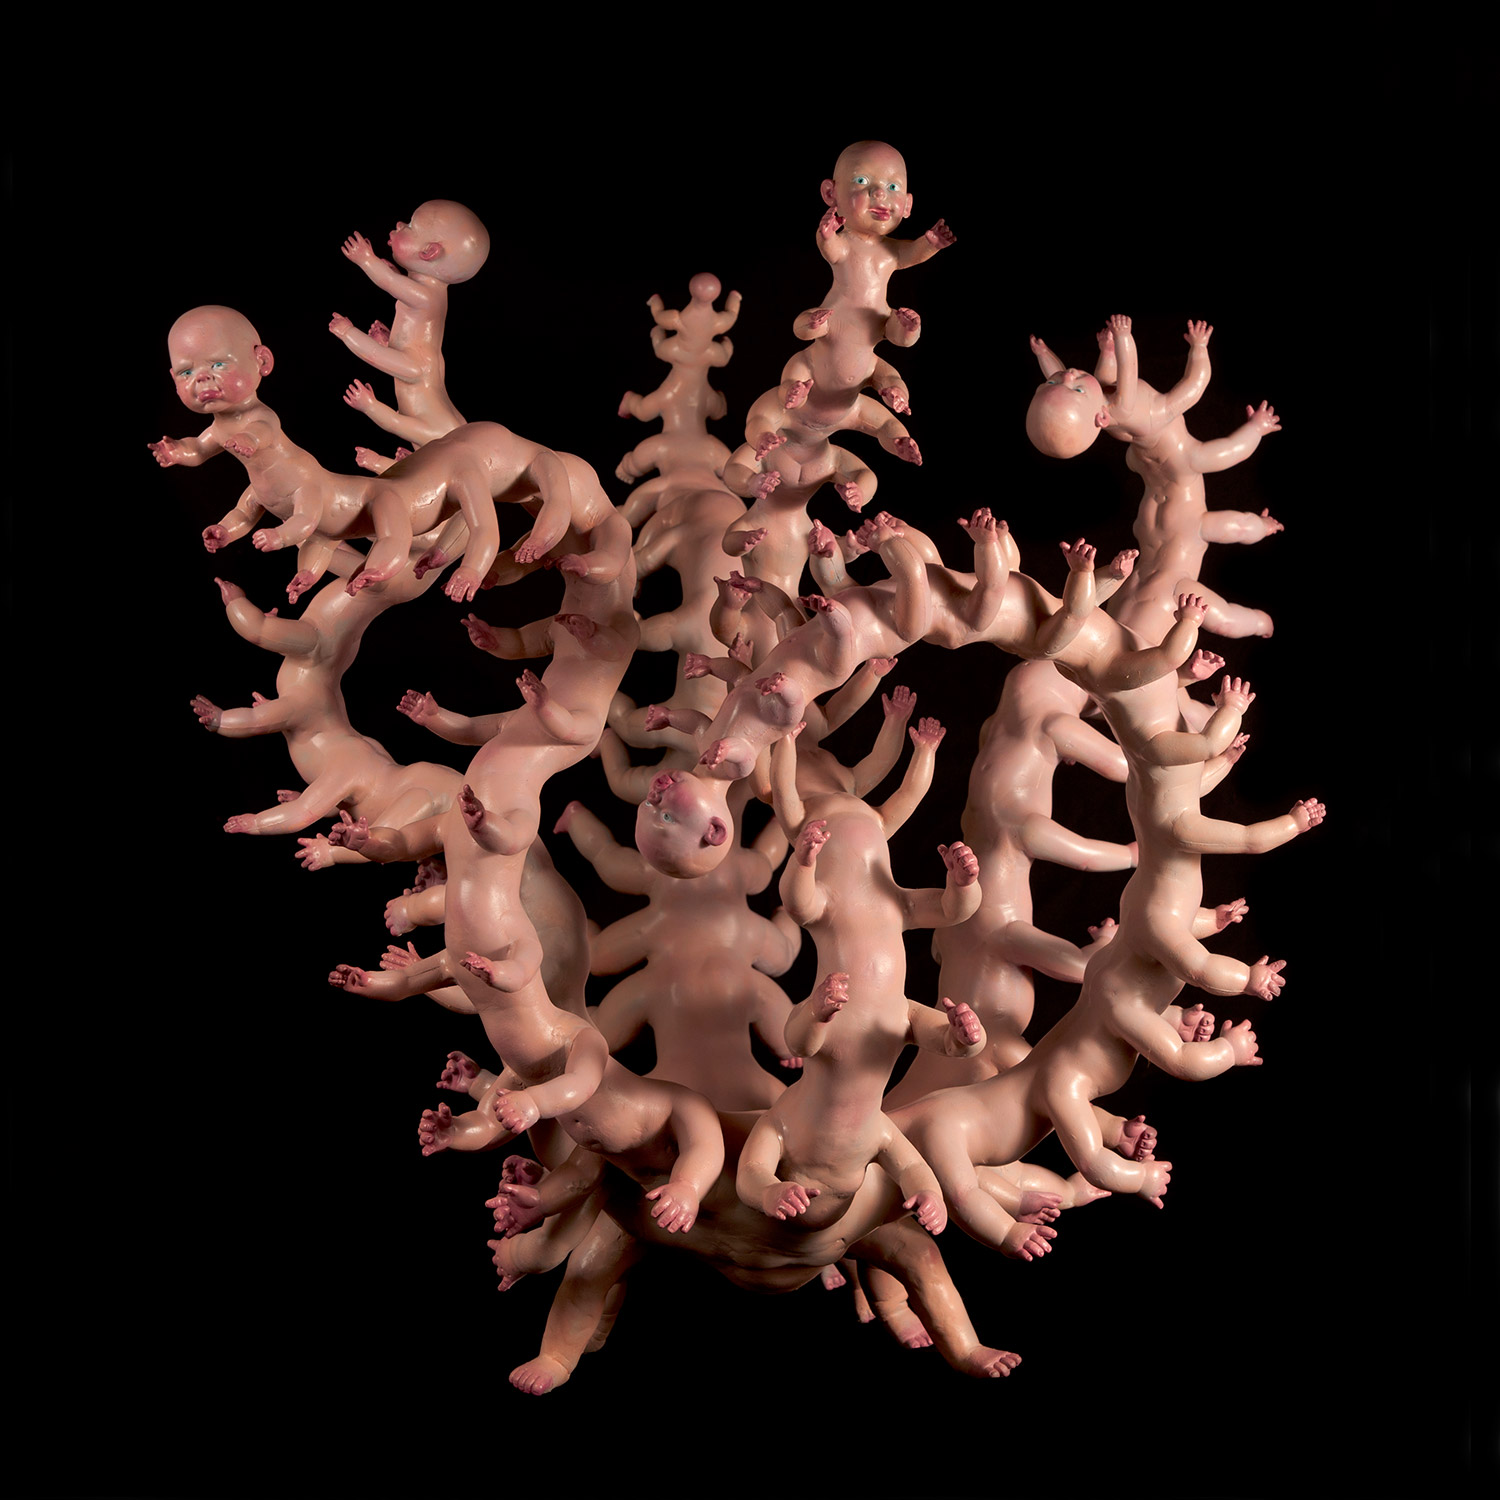 Jon-Beinart_Toddlerpede_mixed-media-sculpture